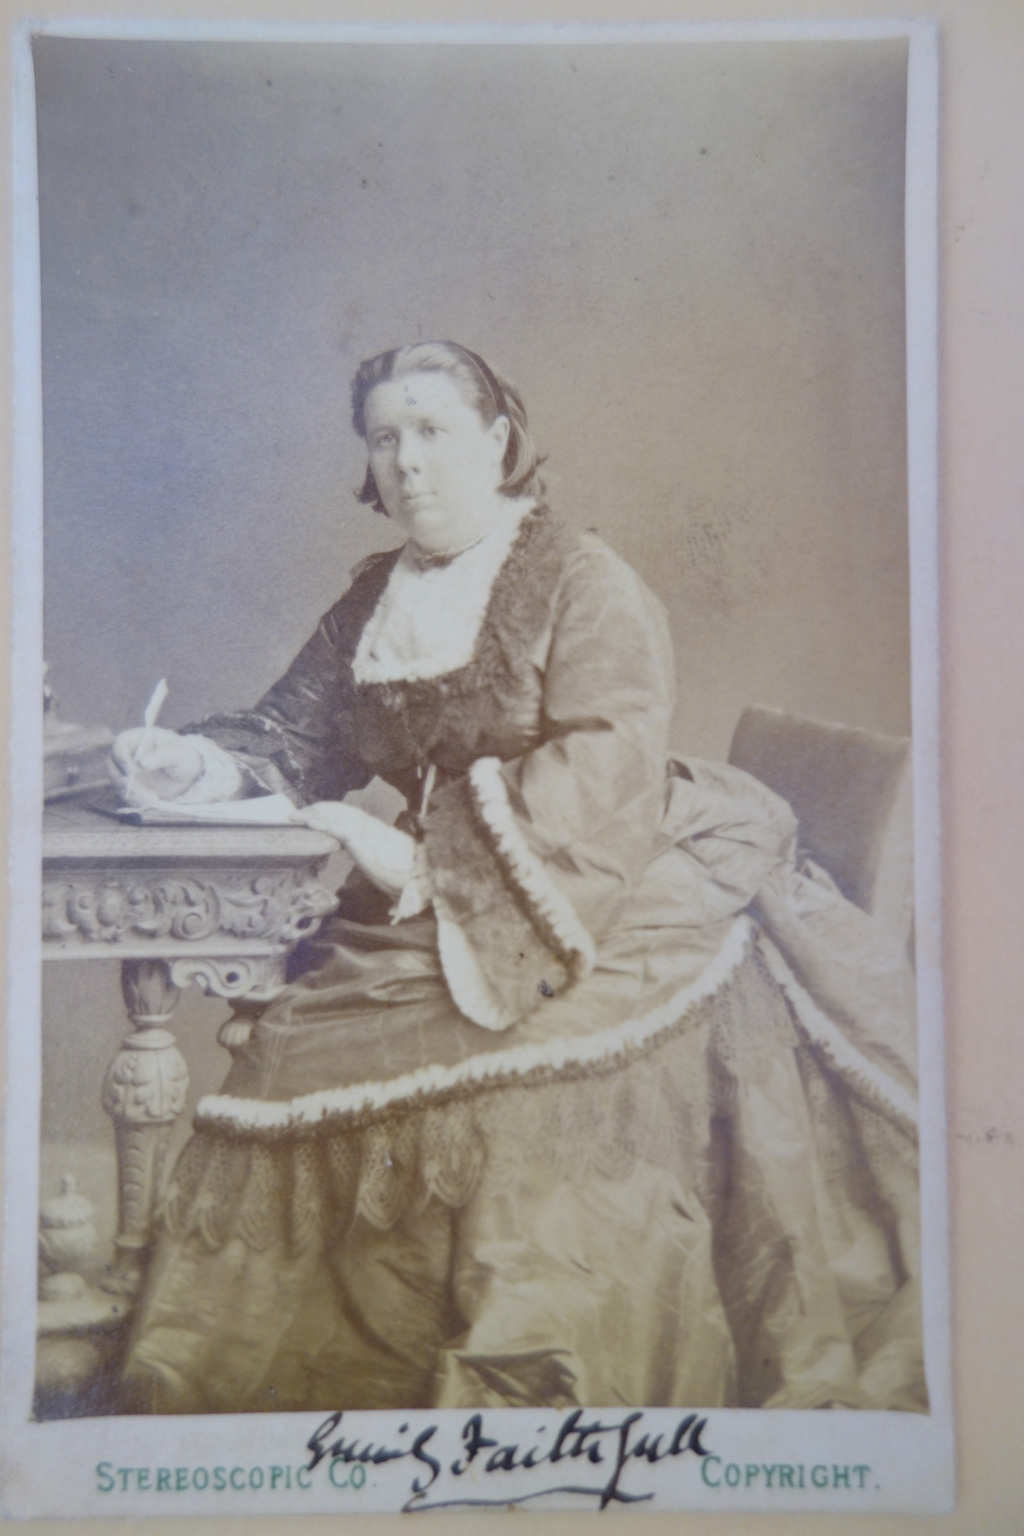 Carte de visit photograph of Faithfull with her autograph in the lower margin.